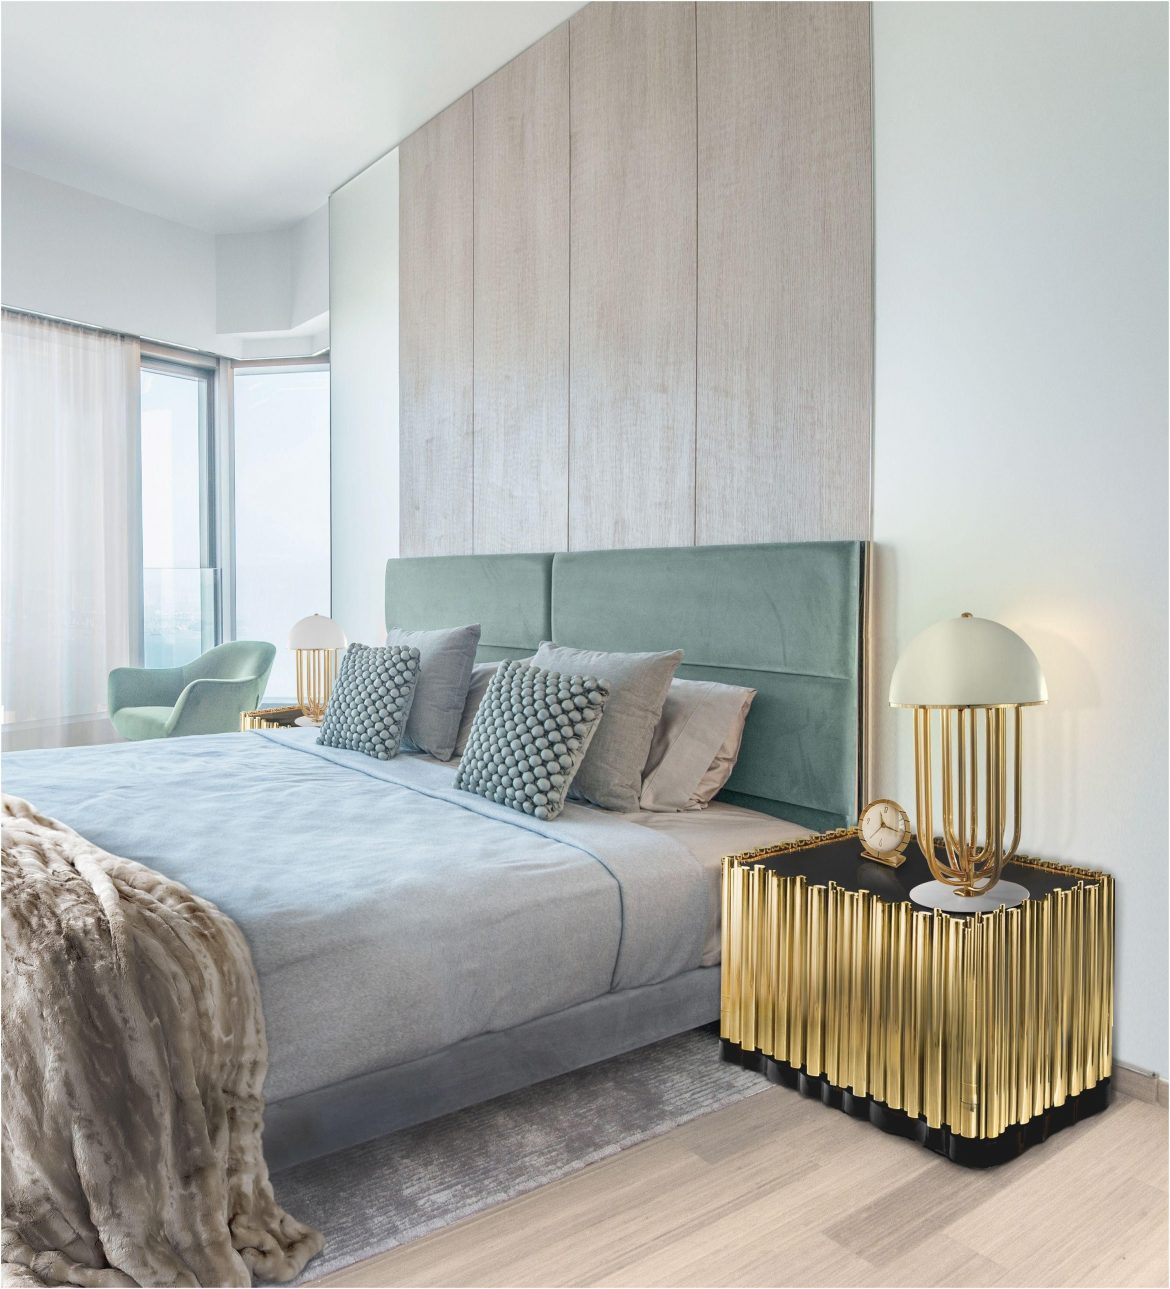 7 Bedside Tables Ideas That Make Your Bedroom Decor More Functional 3